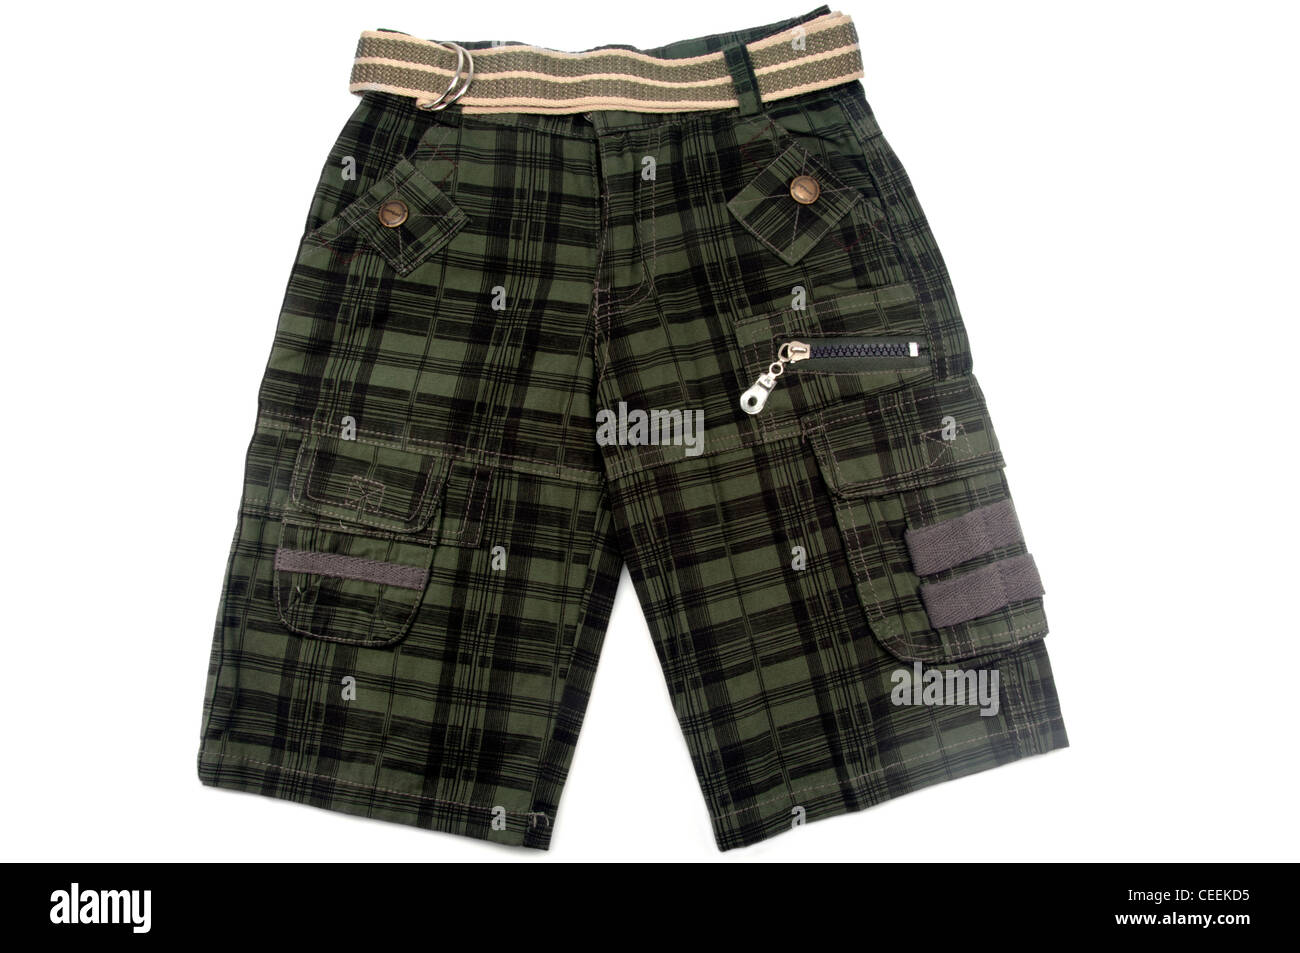 toddler cargo shorts isolated on white background - Stock Image